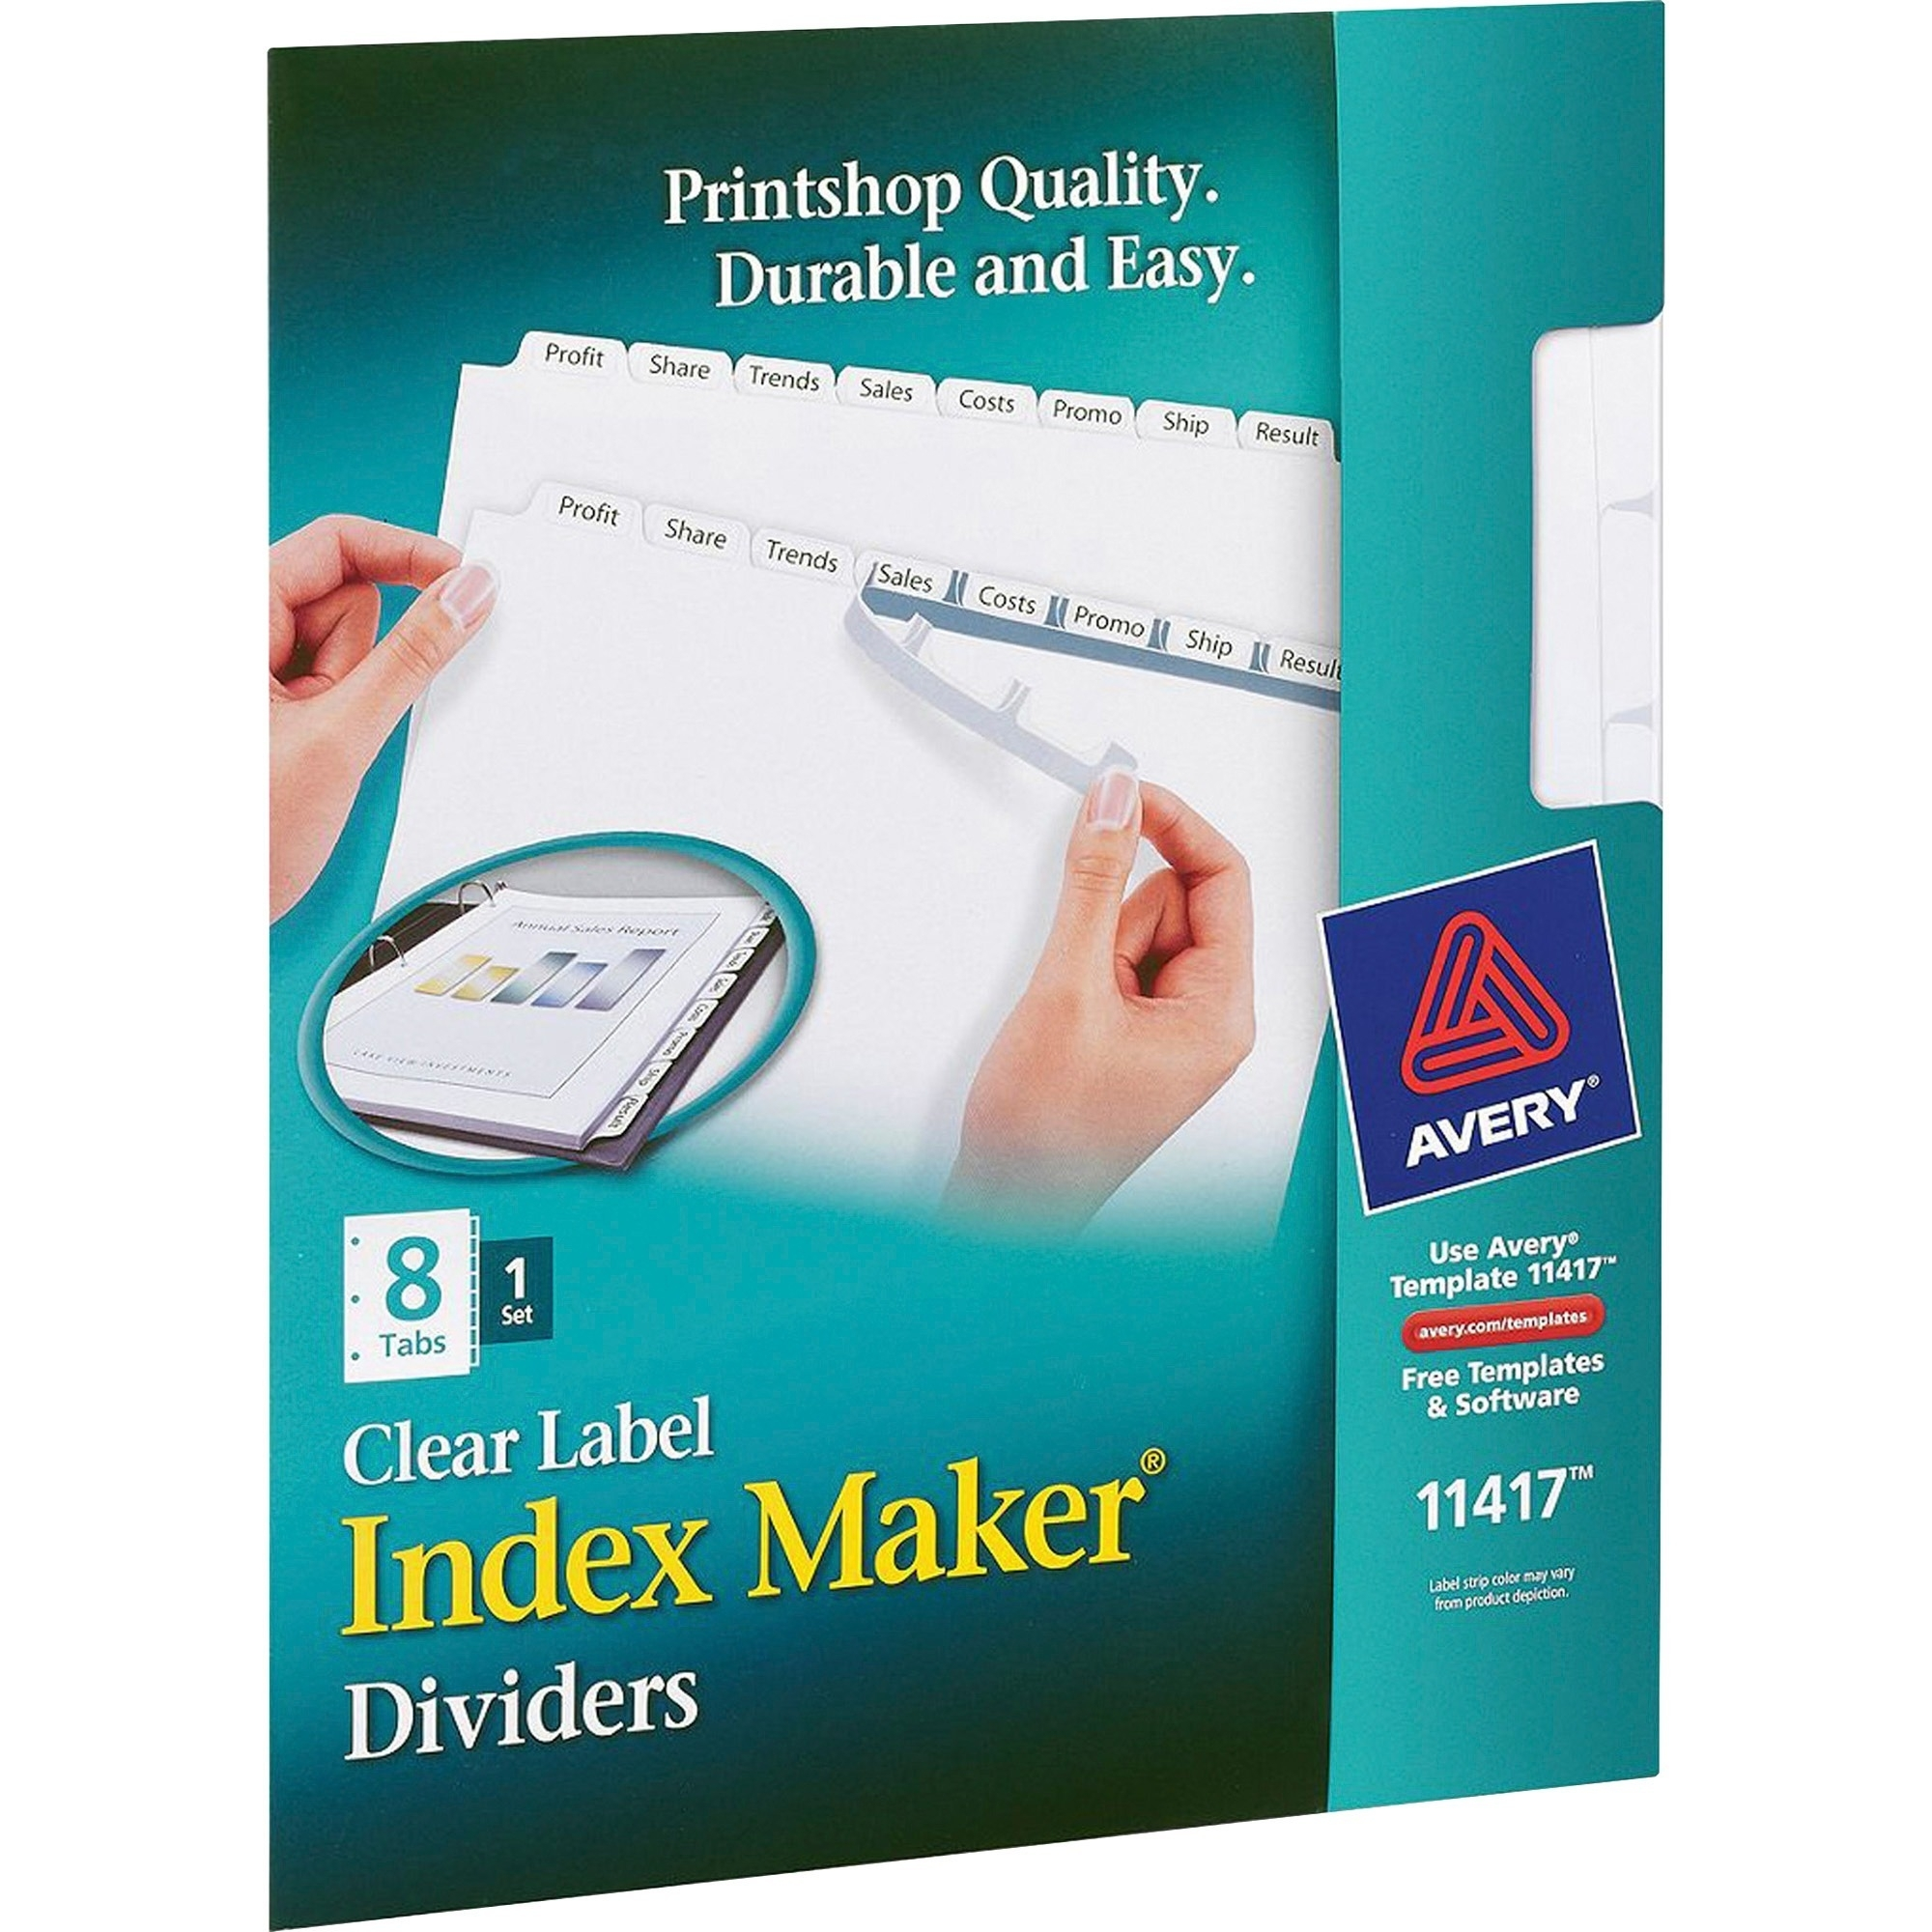 Avery® Index Maker Print & Apply Clear Label Dividers With White Tabs in Free Printable Number Labels 1-31